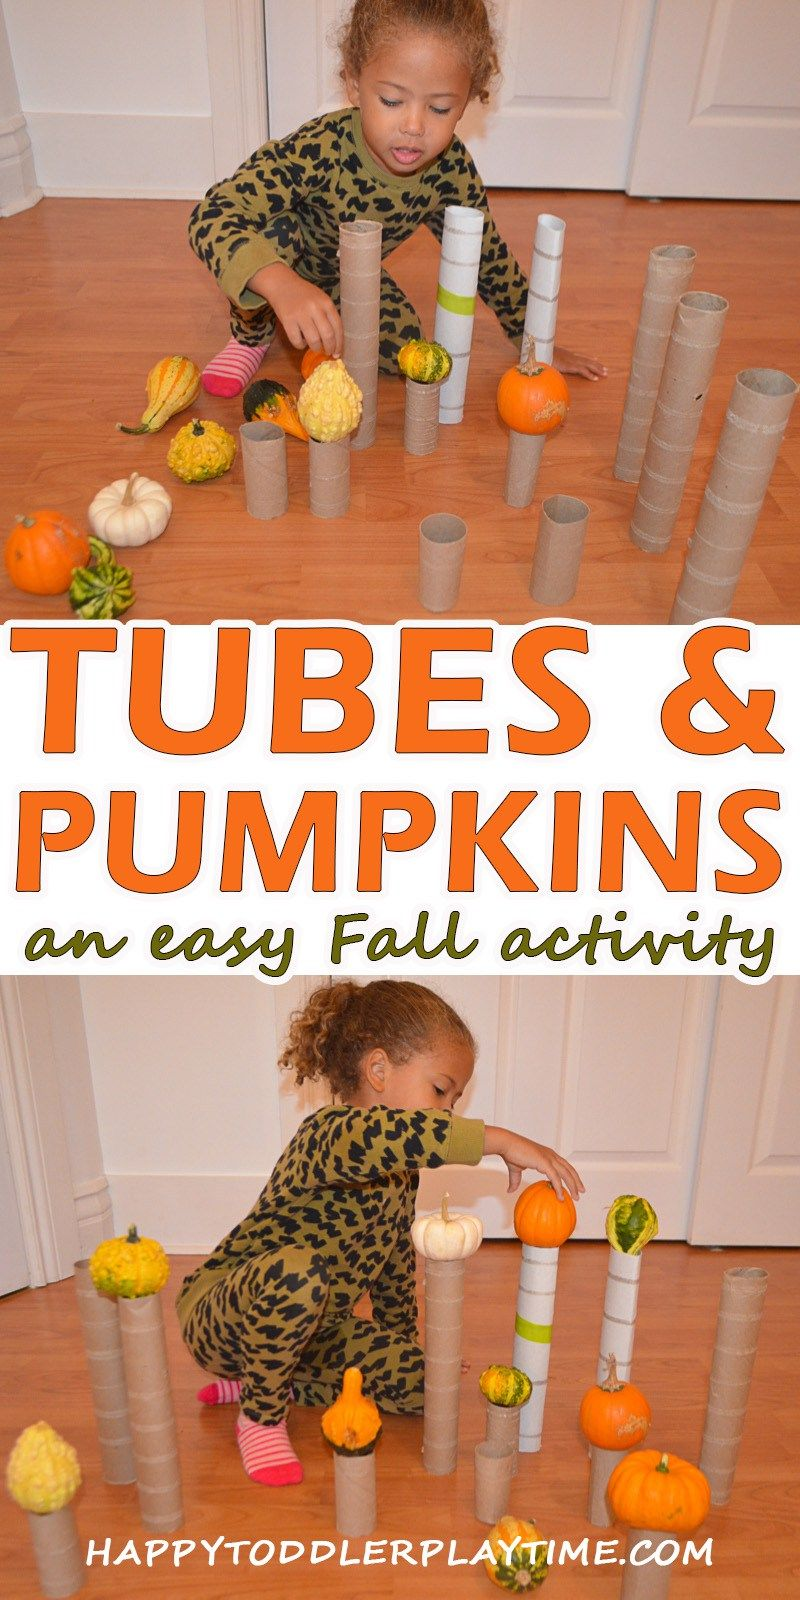 Tubes & Pumpkins: Fall STEM Activity #fallactivitiesforkids